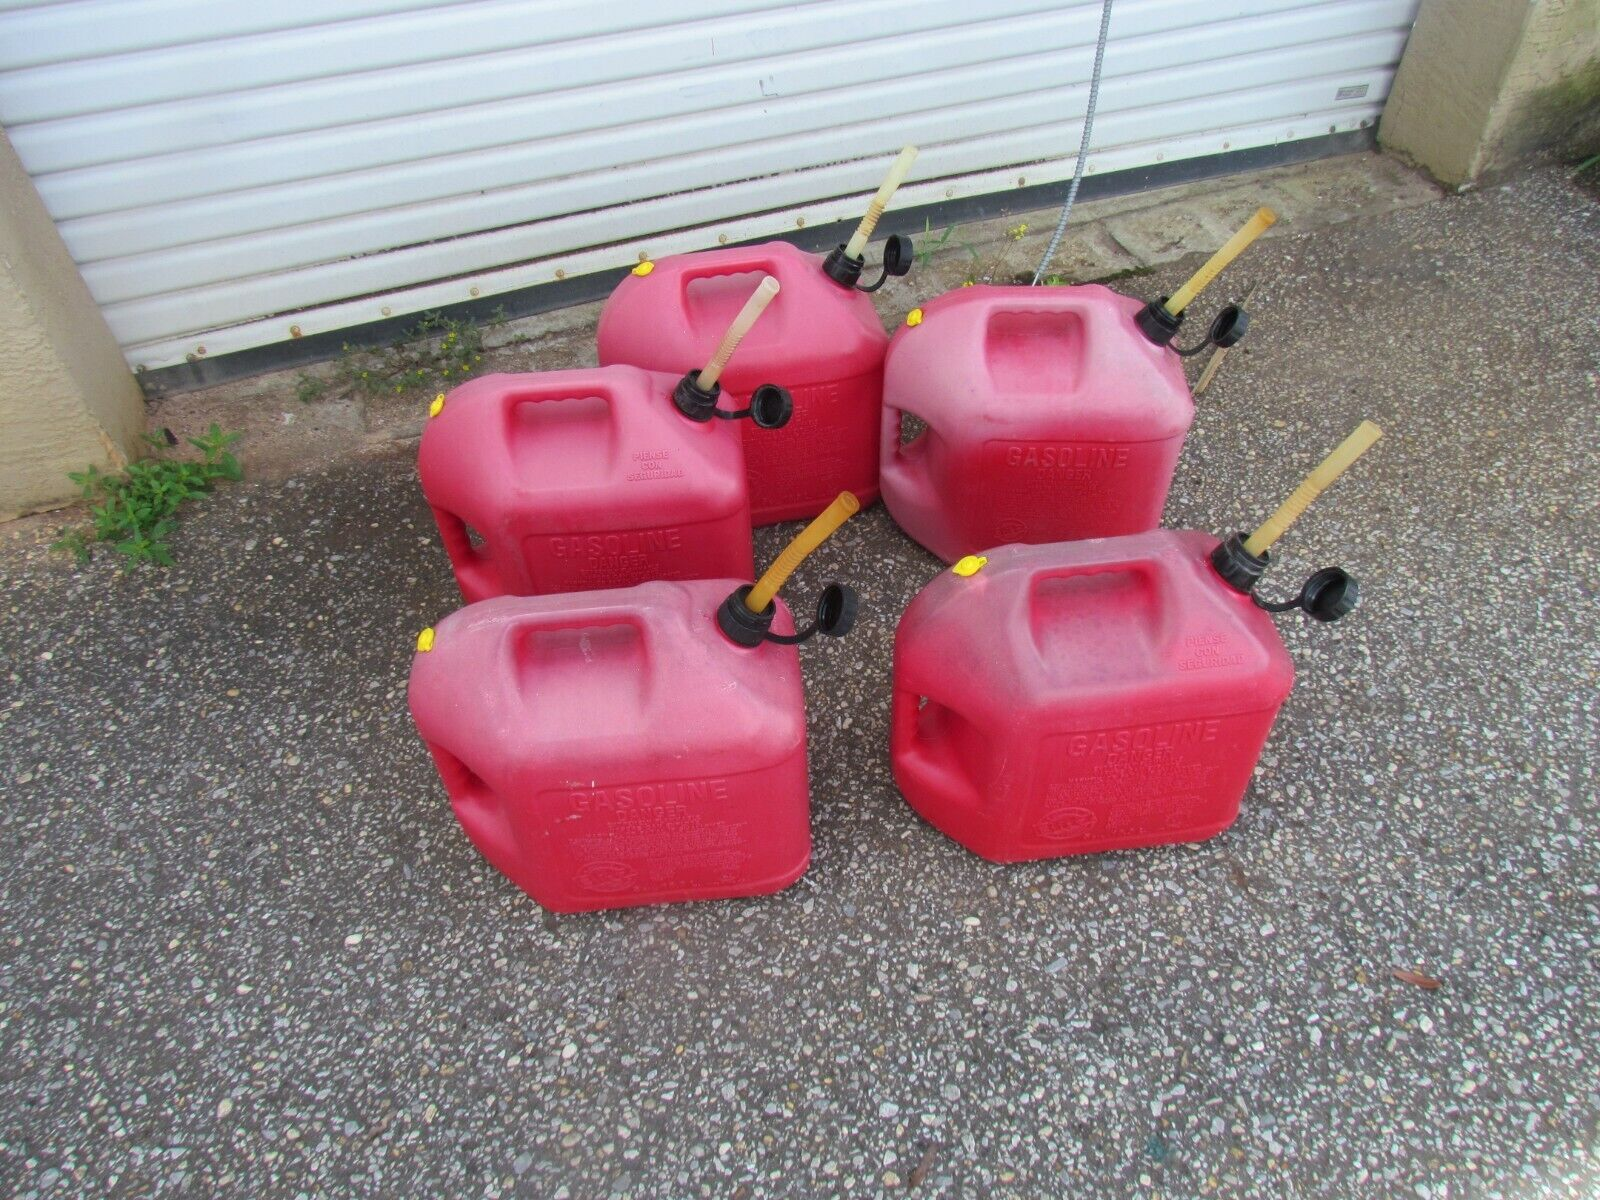 BLITZ 5 GALLON GAS CANS VENTED WITH PULL OUT SPOUT 5 EACH - $174.99